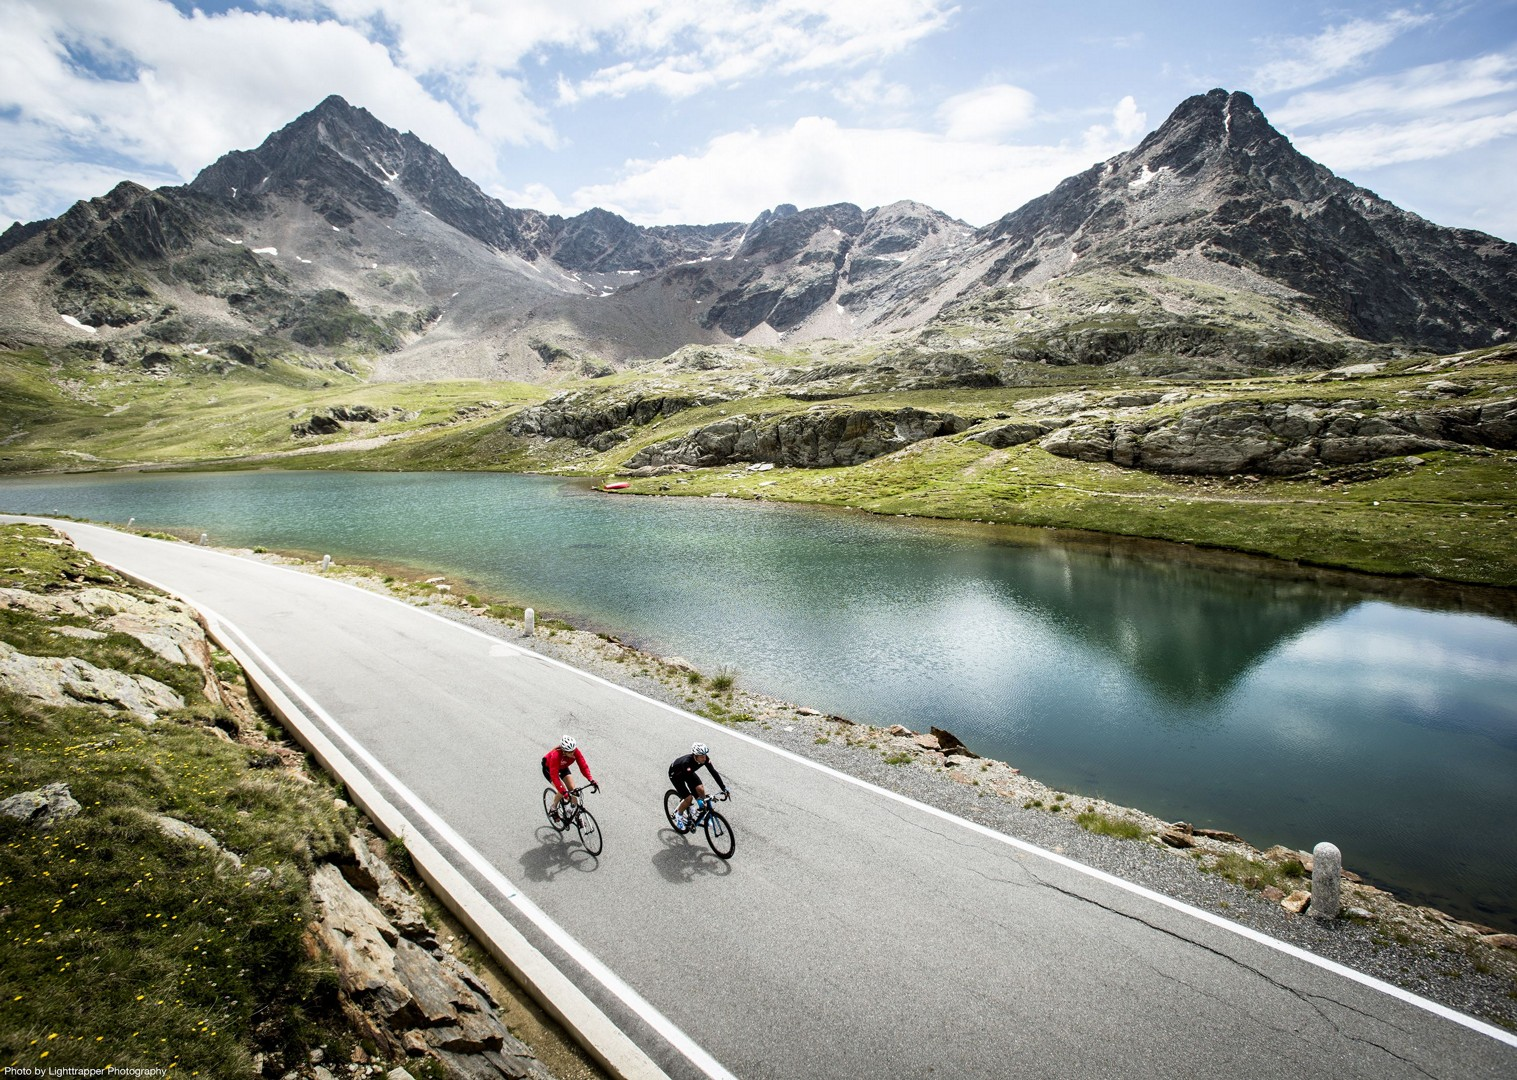 gavia-guided-road-cycling-holiday.jpg - Italy - Italian Alps - Guided Road Cycling Holiday - Road Cycling